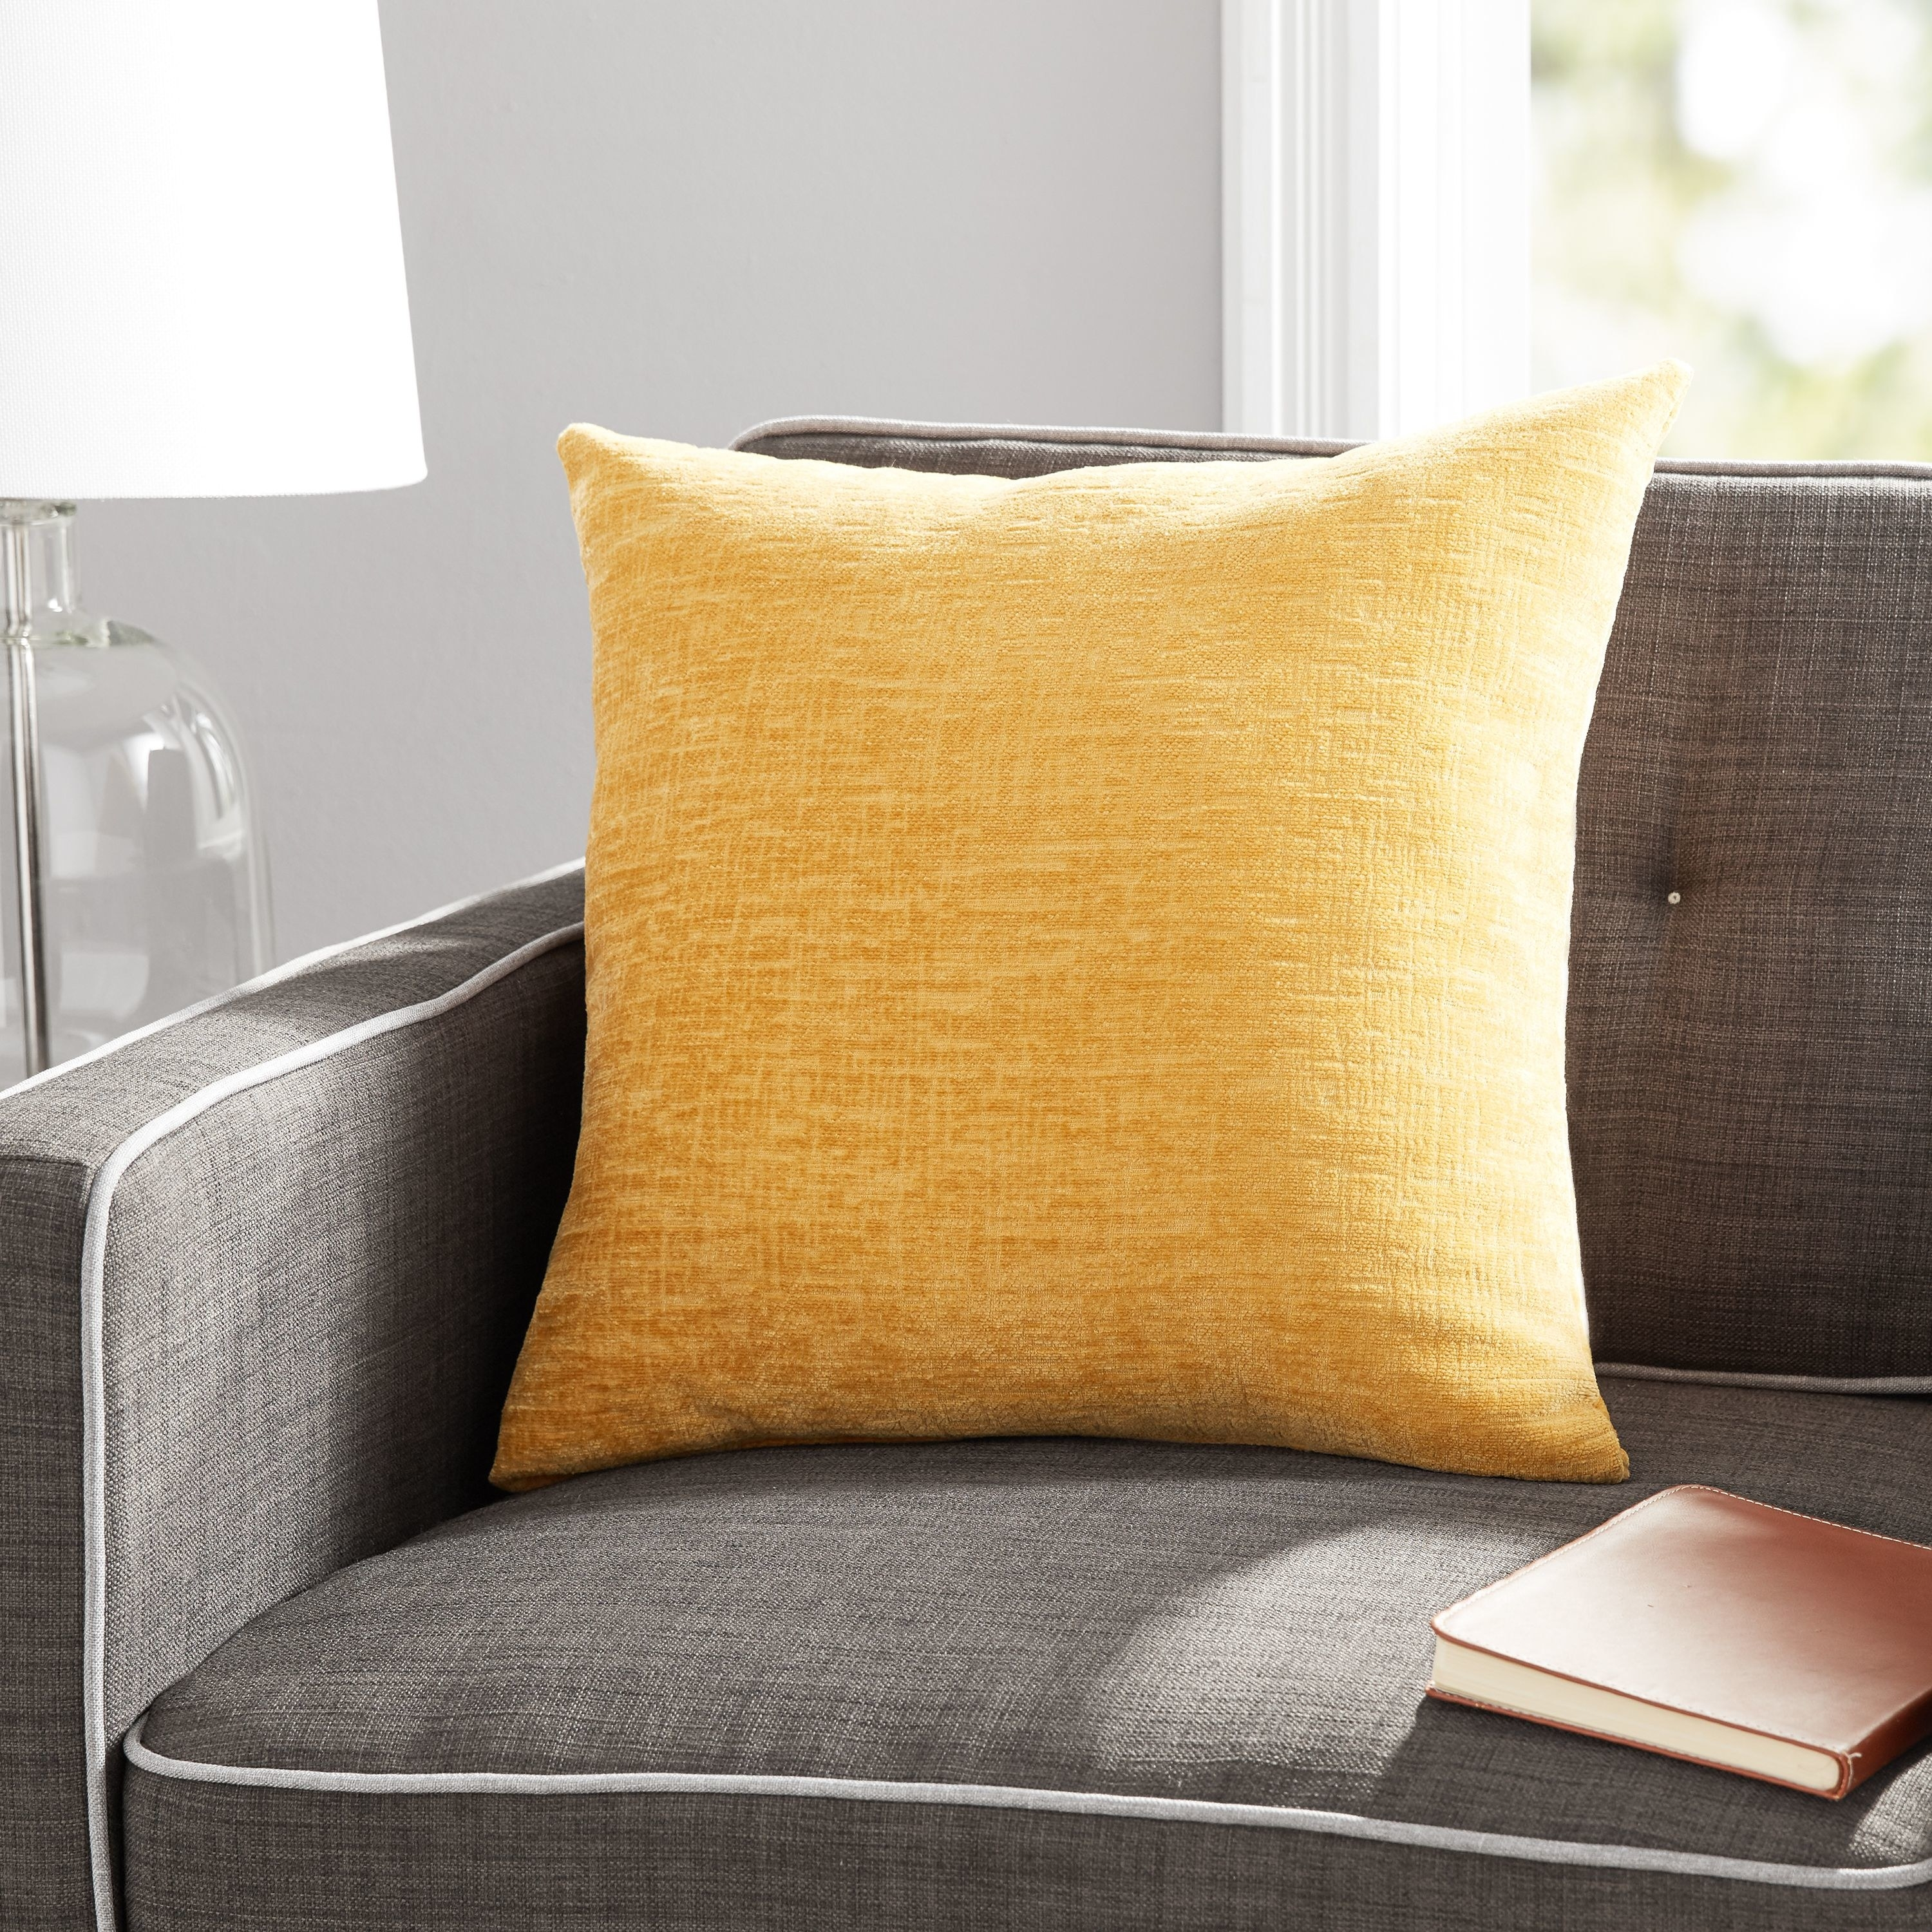 The textured pillow in yellow